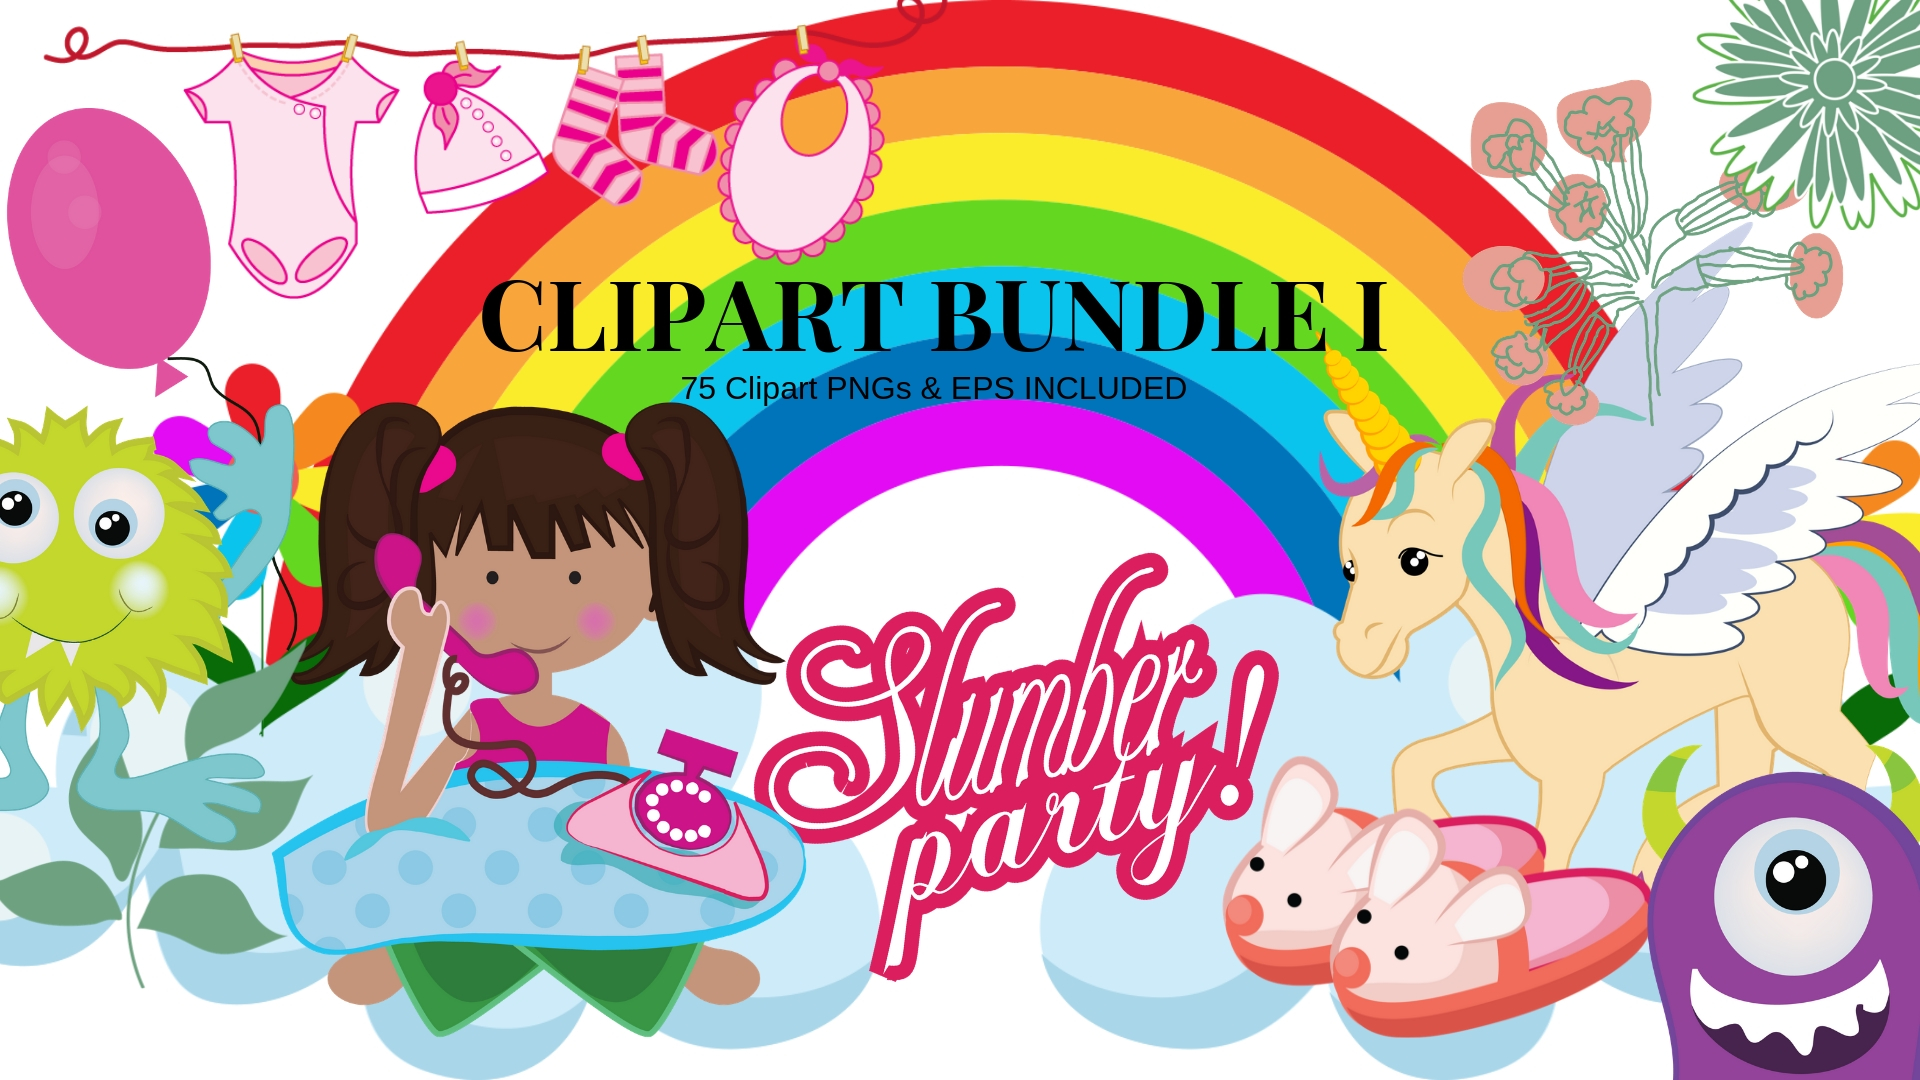 75 years free clipart image free download Royalty Free ClipArt Bundle 74+ illustrations Gallery image free download